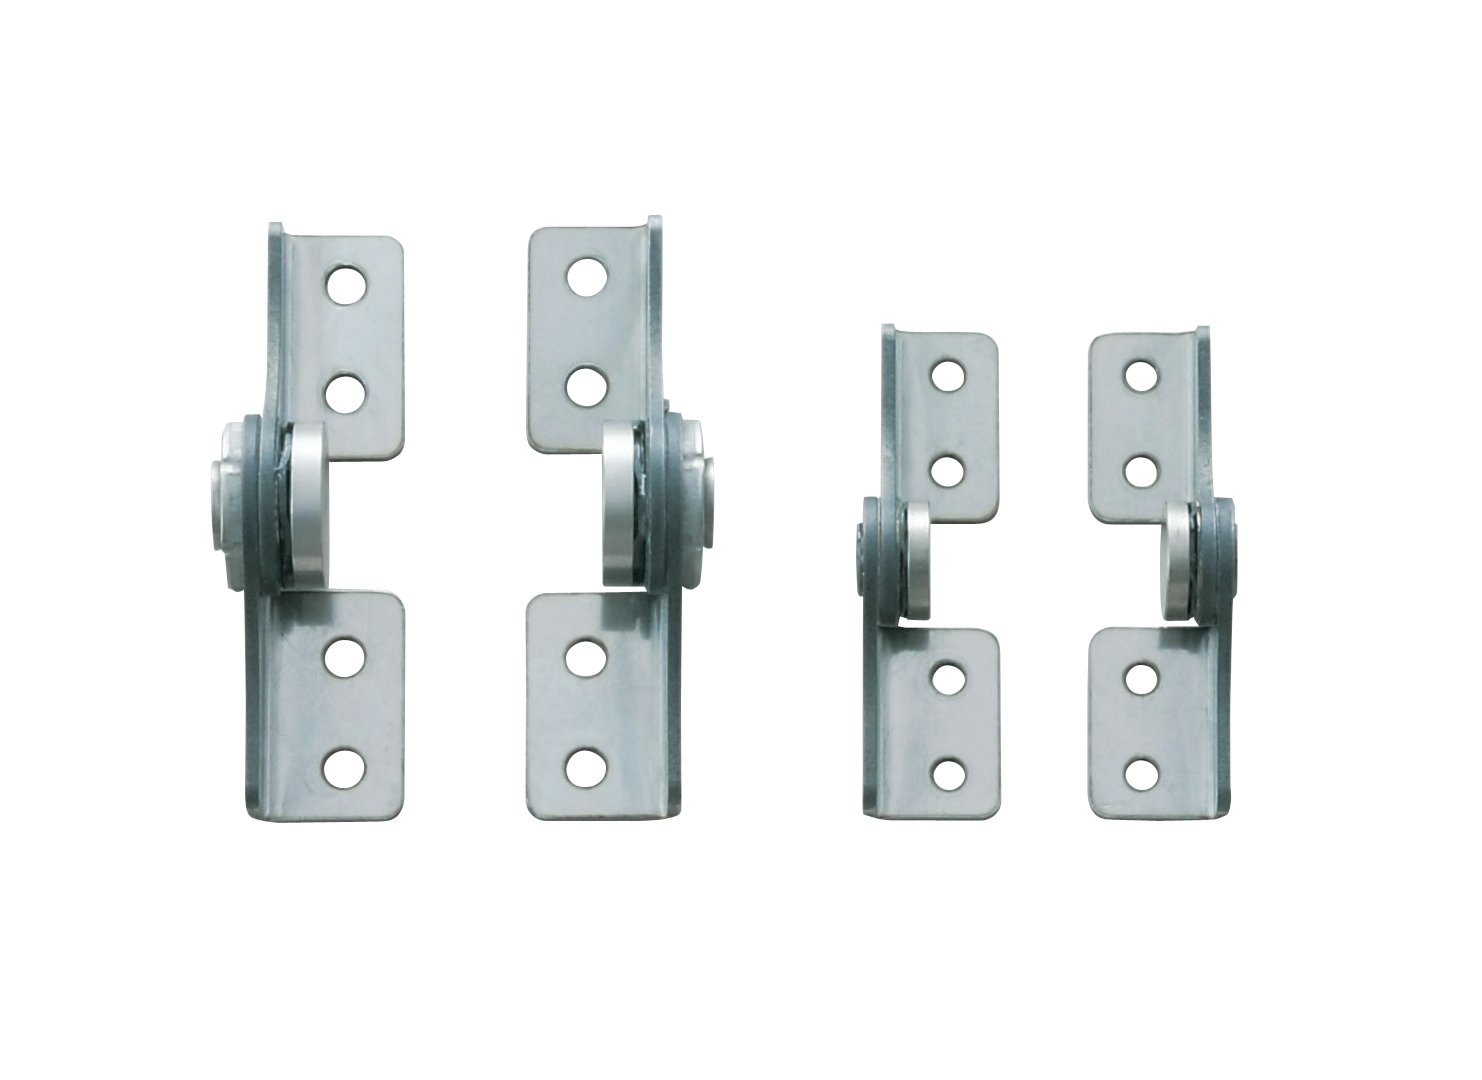 Pack of 1 Friction Hinge 2-5//8 Open Width Left Hand 1 Leaf Height 17.7 lbs//in Torque 430 Stainless Steel